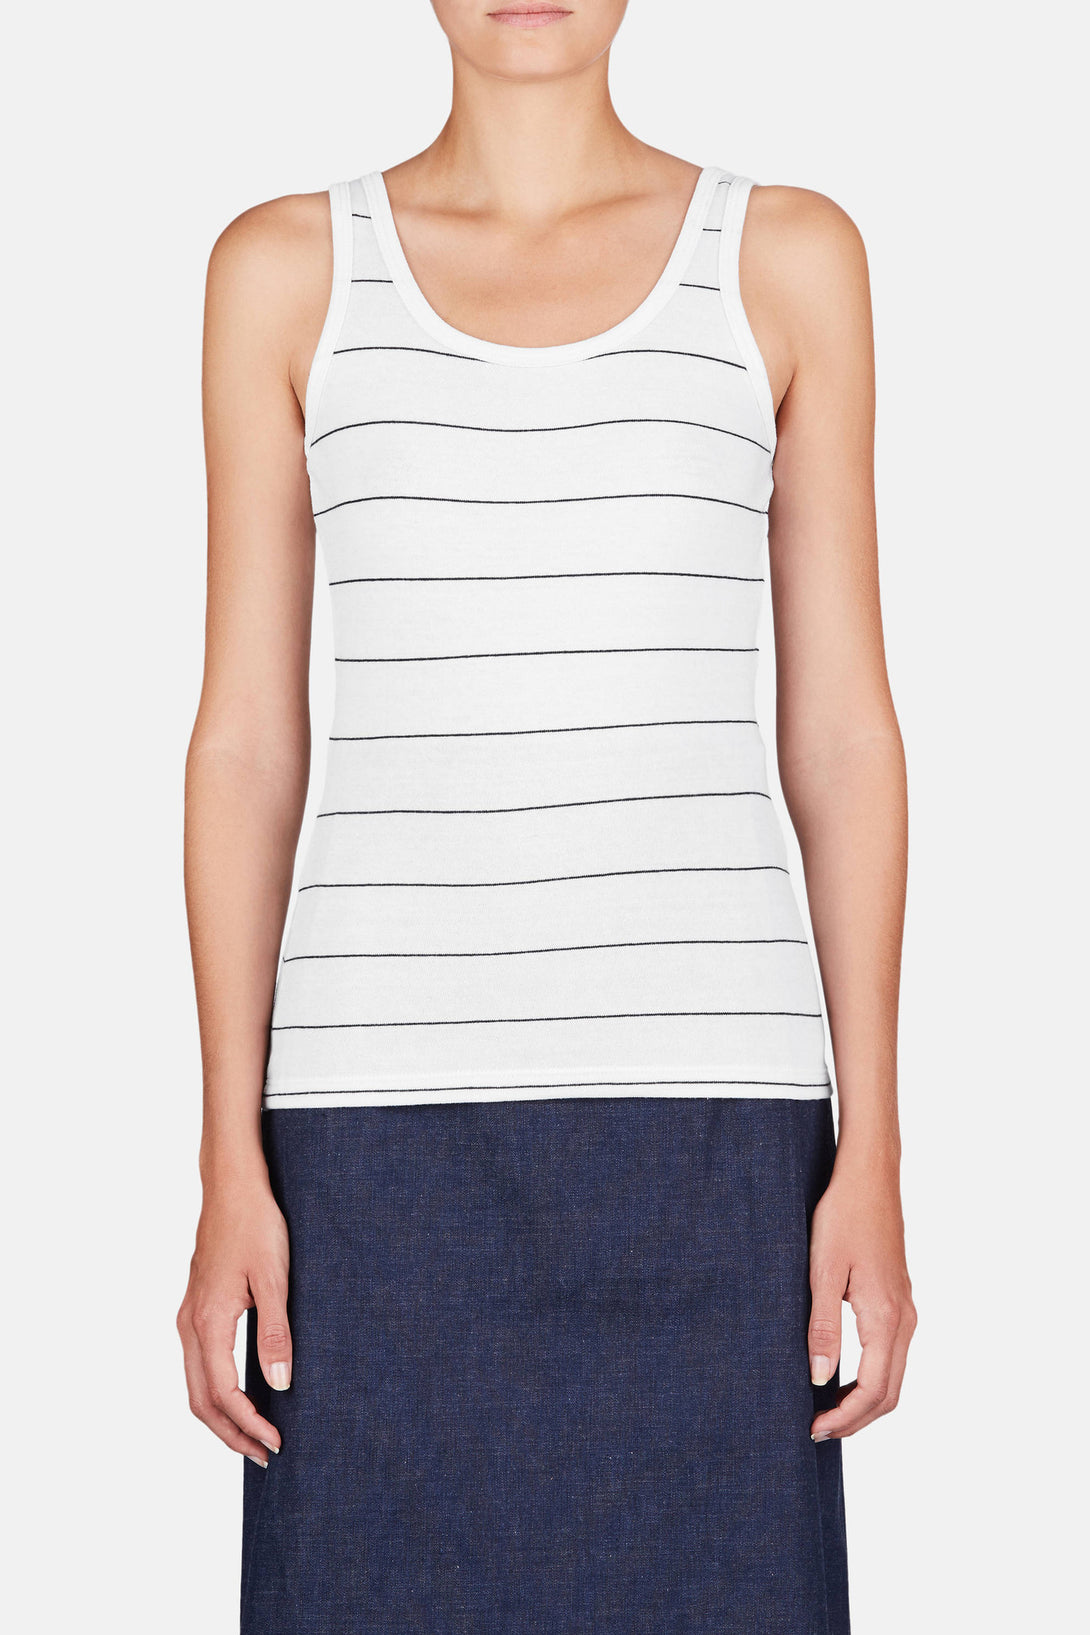 The Eloise Tank - White/Navy